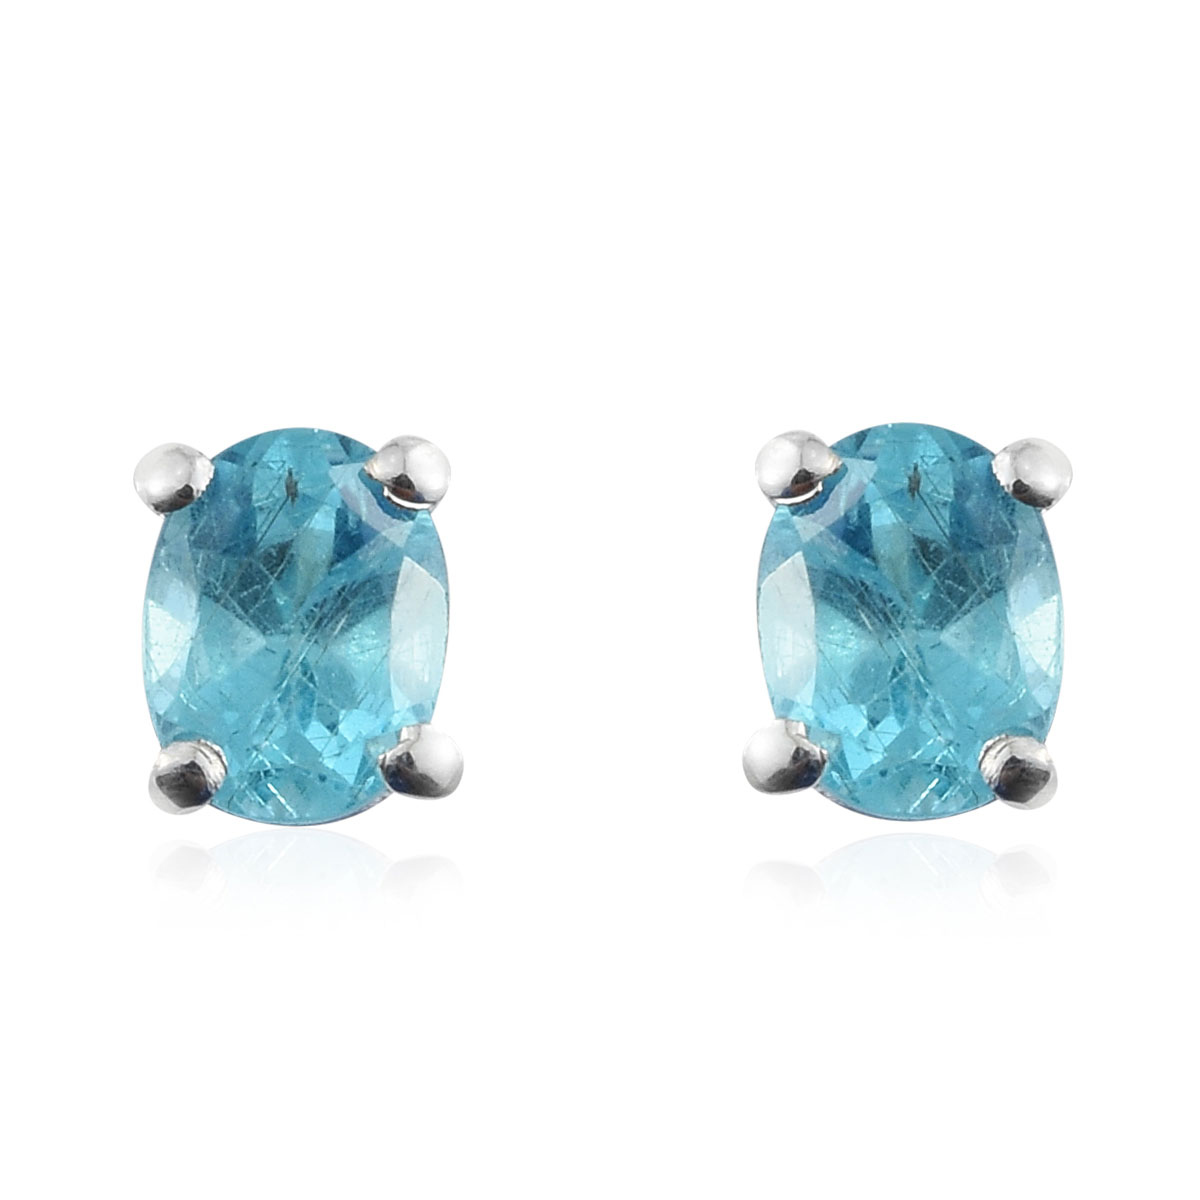 d10757128 Madagascar Paraiba Apatite Stud Earrings in Sterling Silver 0.75 ctw ...